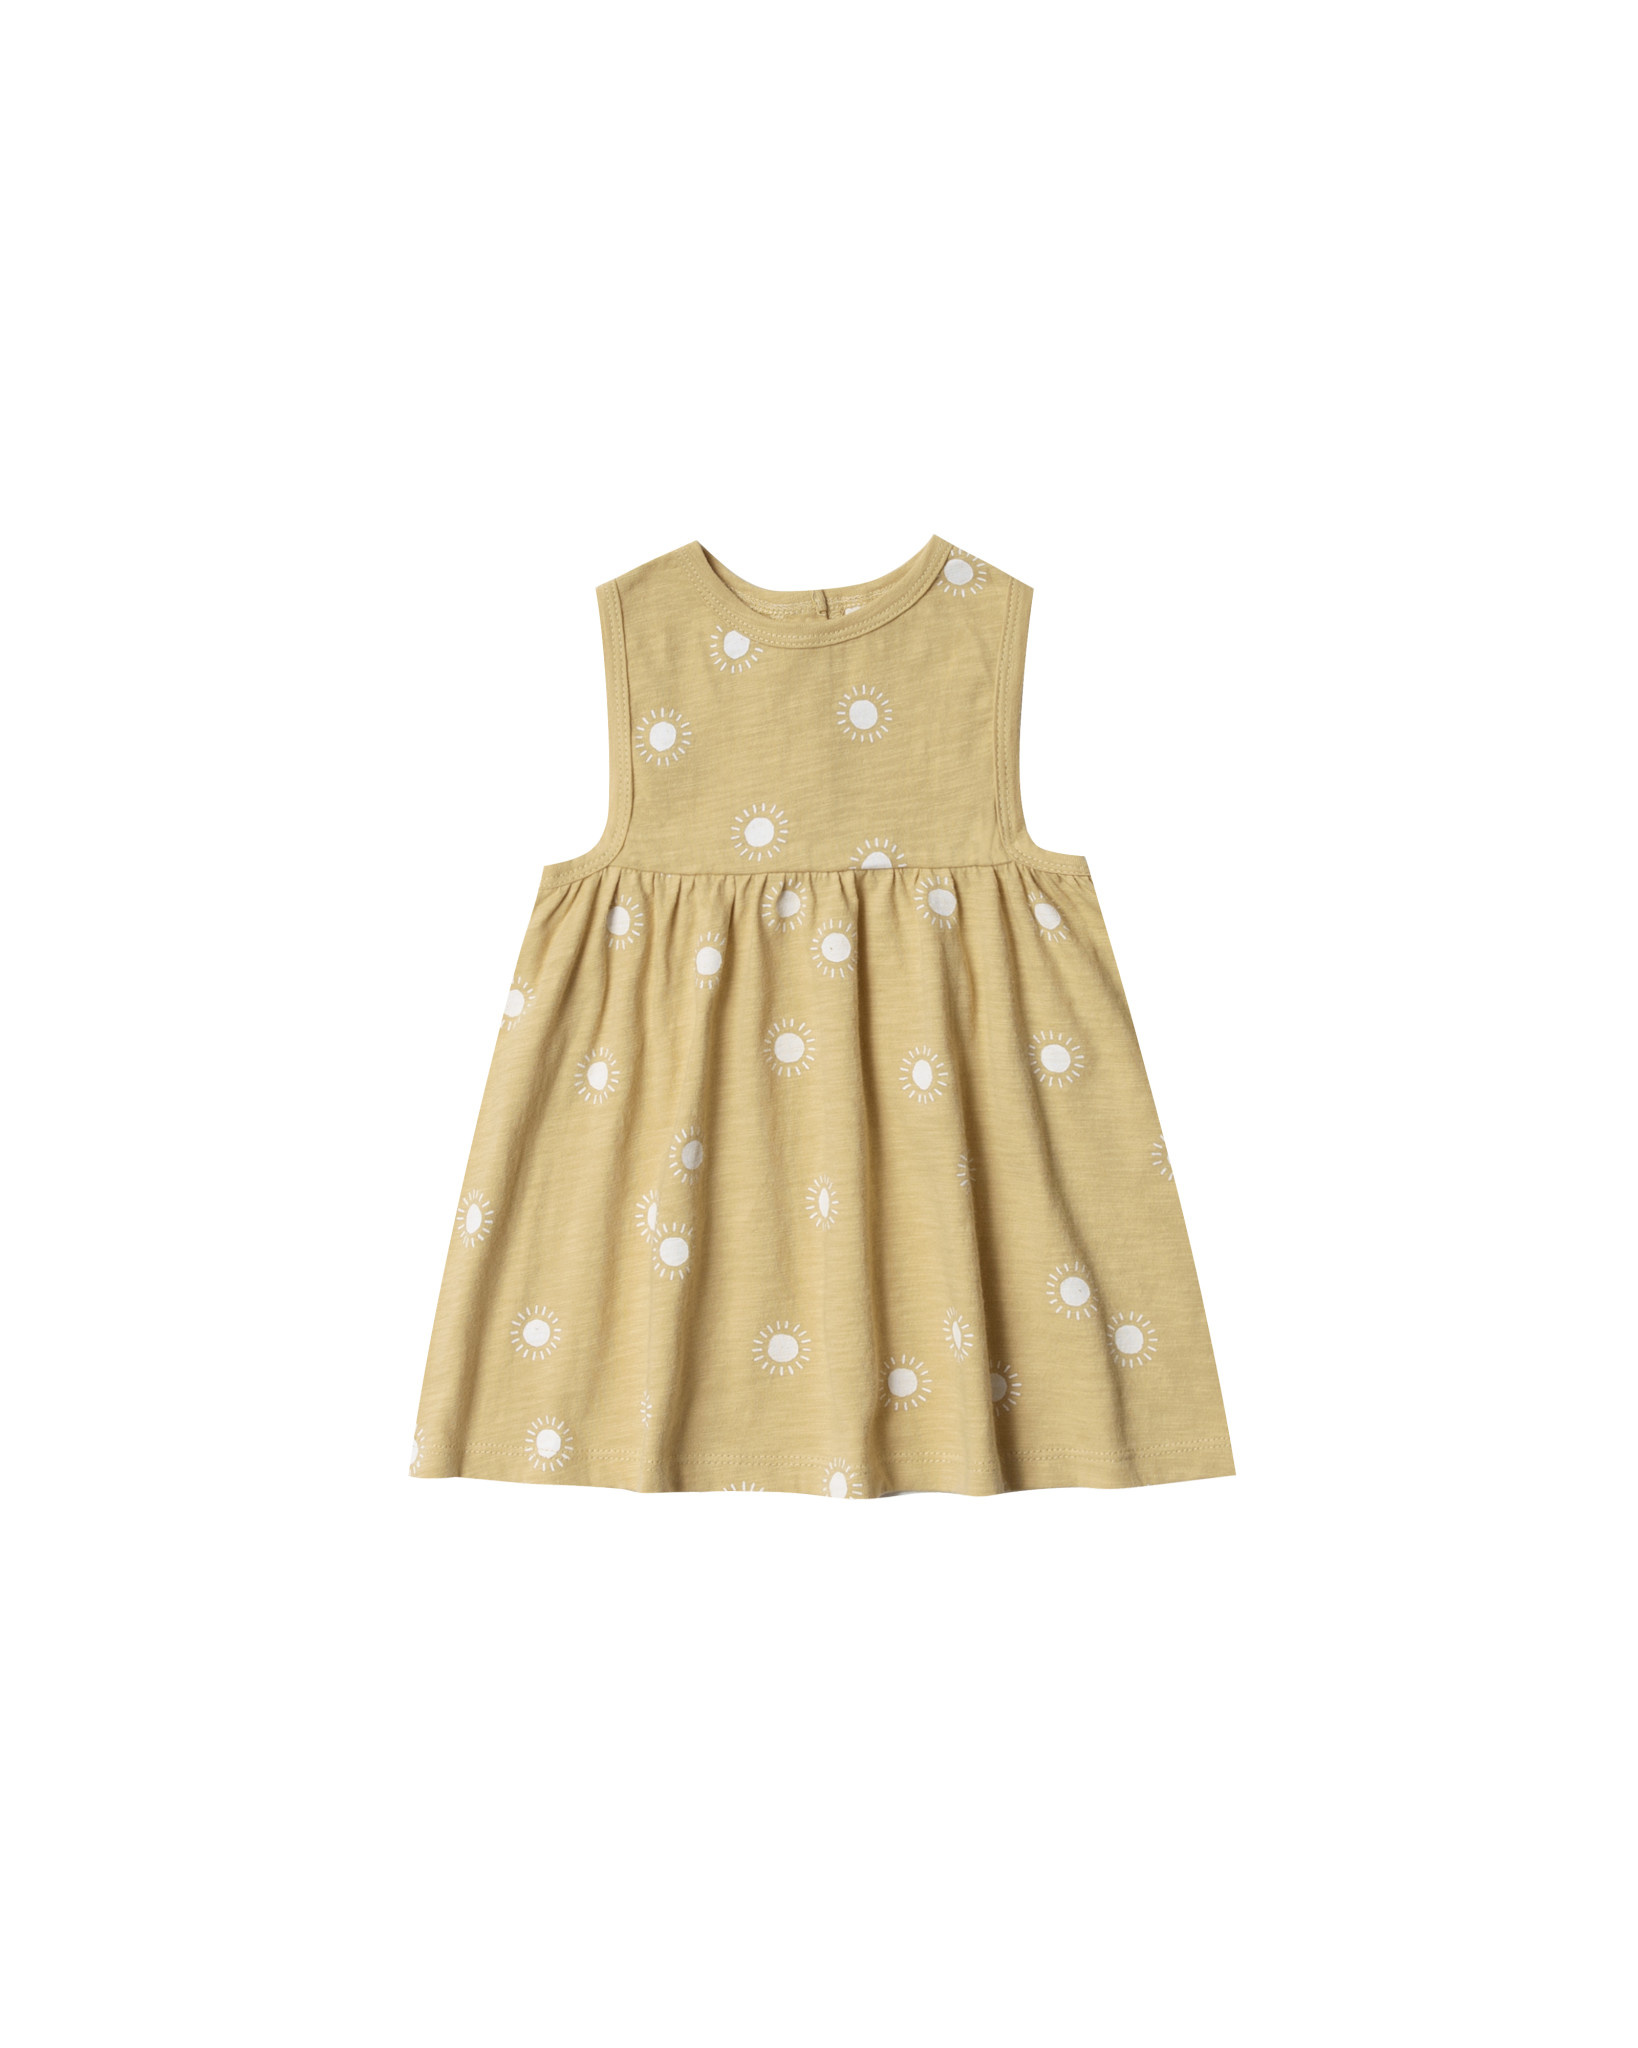 Rylee + Cru Rylee + Cru Sunburst Layla Dress